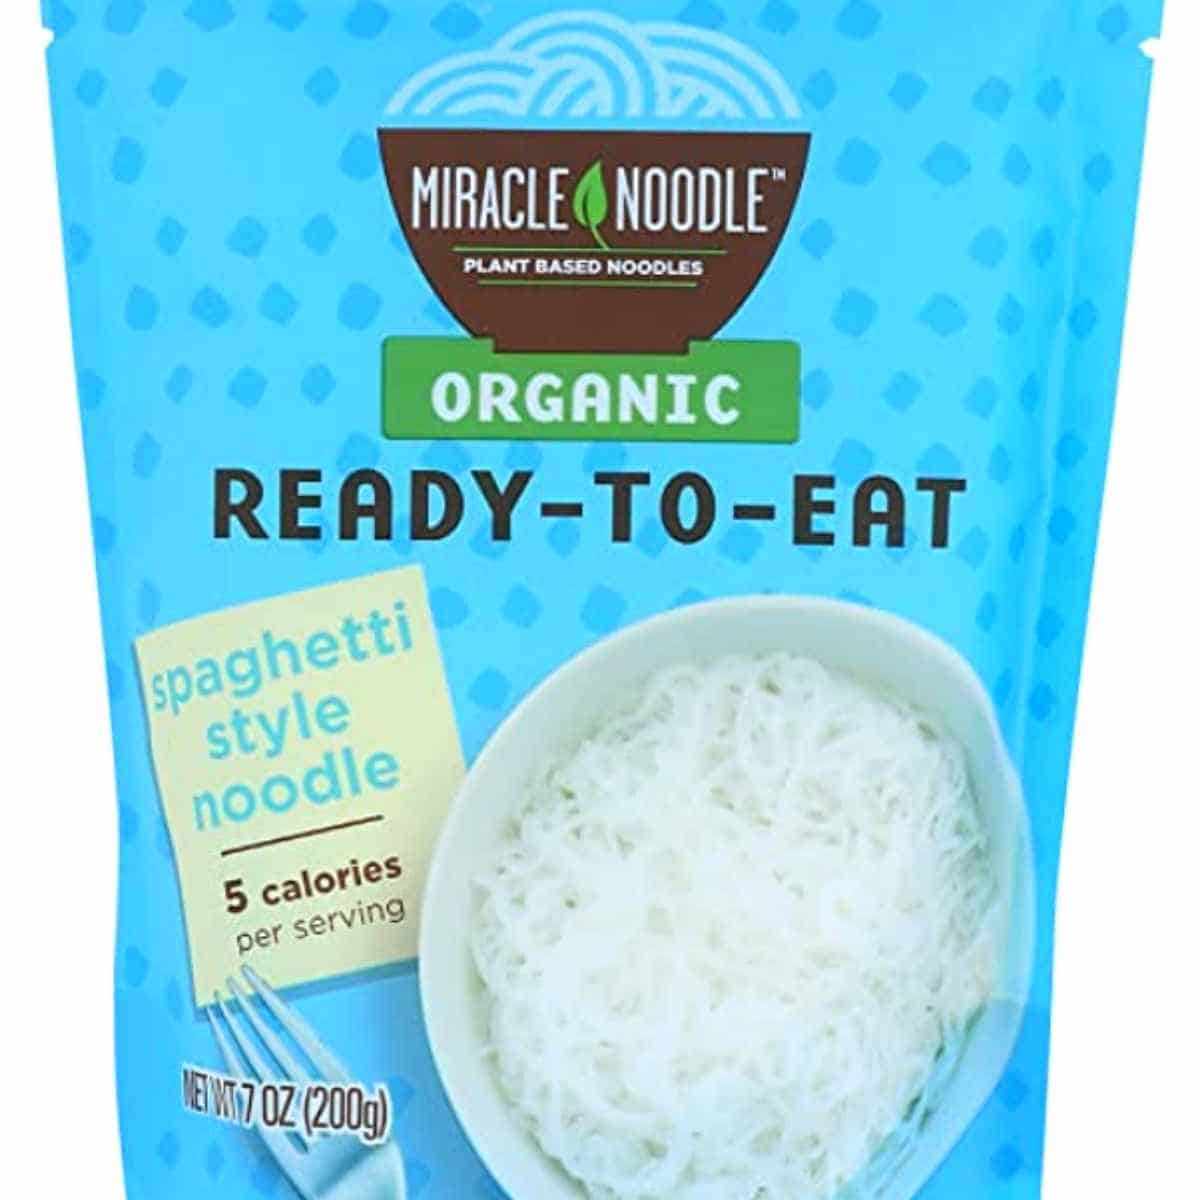 miracle noodle bag - Shirataki: The True Keto Approved Asian Noodle